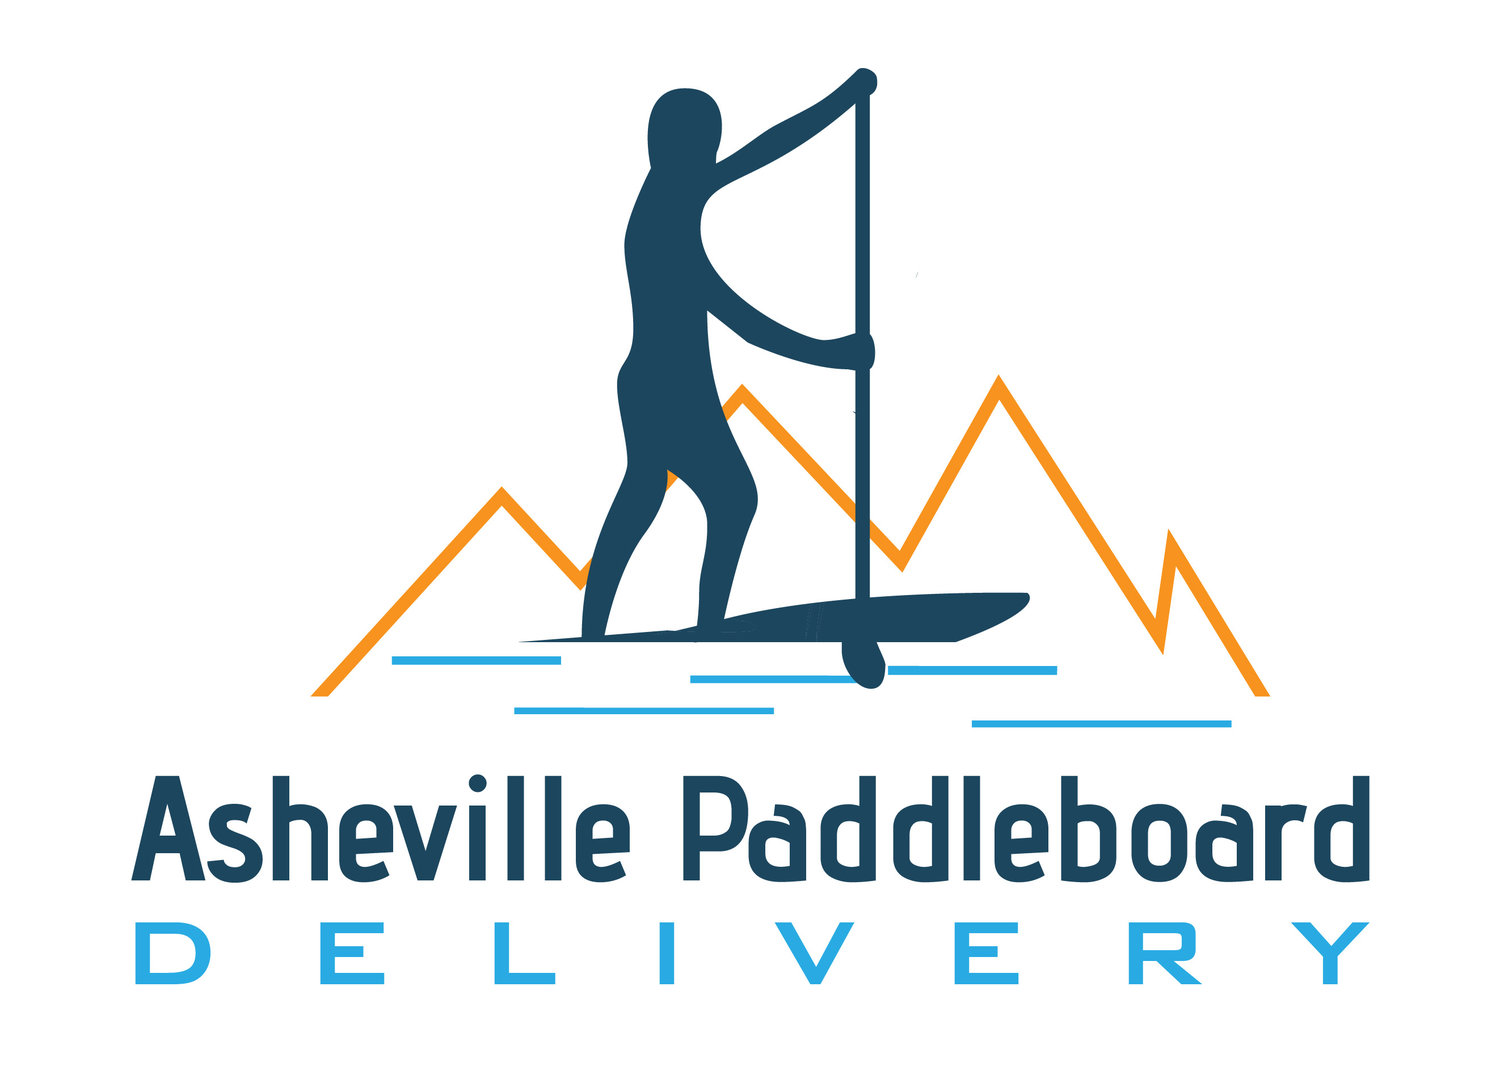 Asheville Paddleboard Delivery